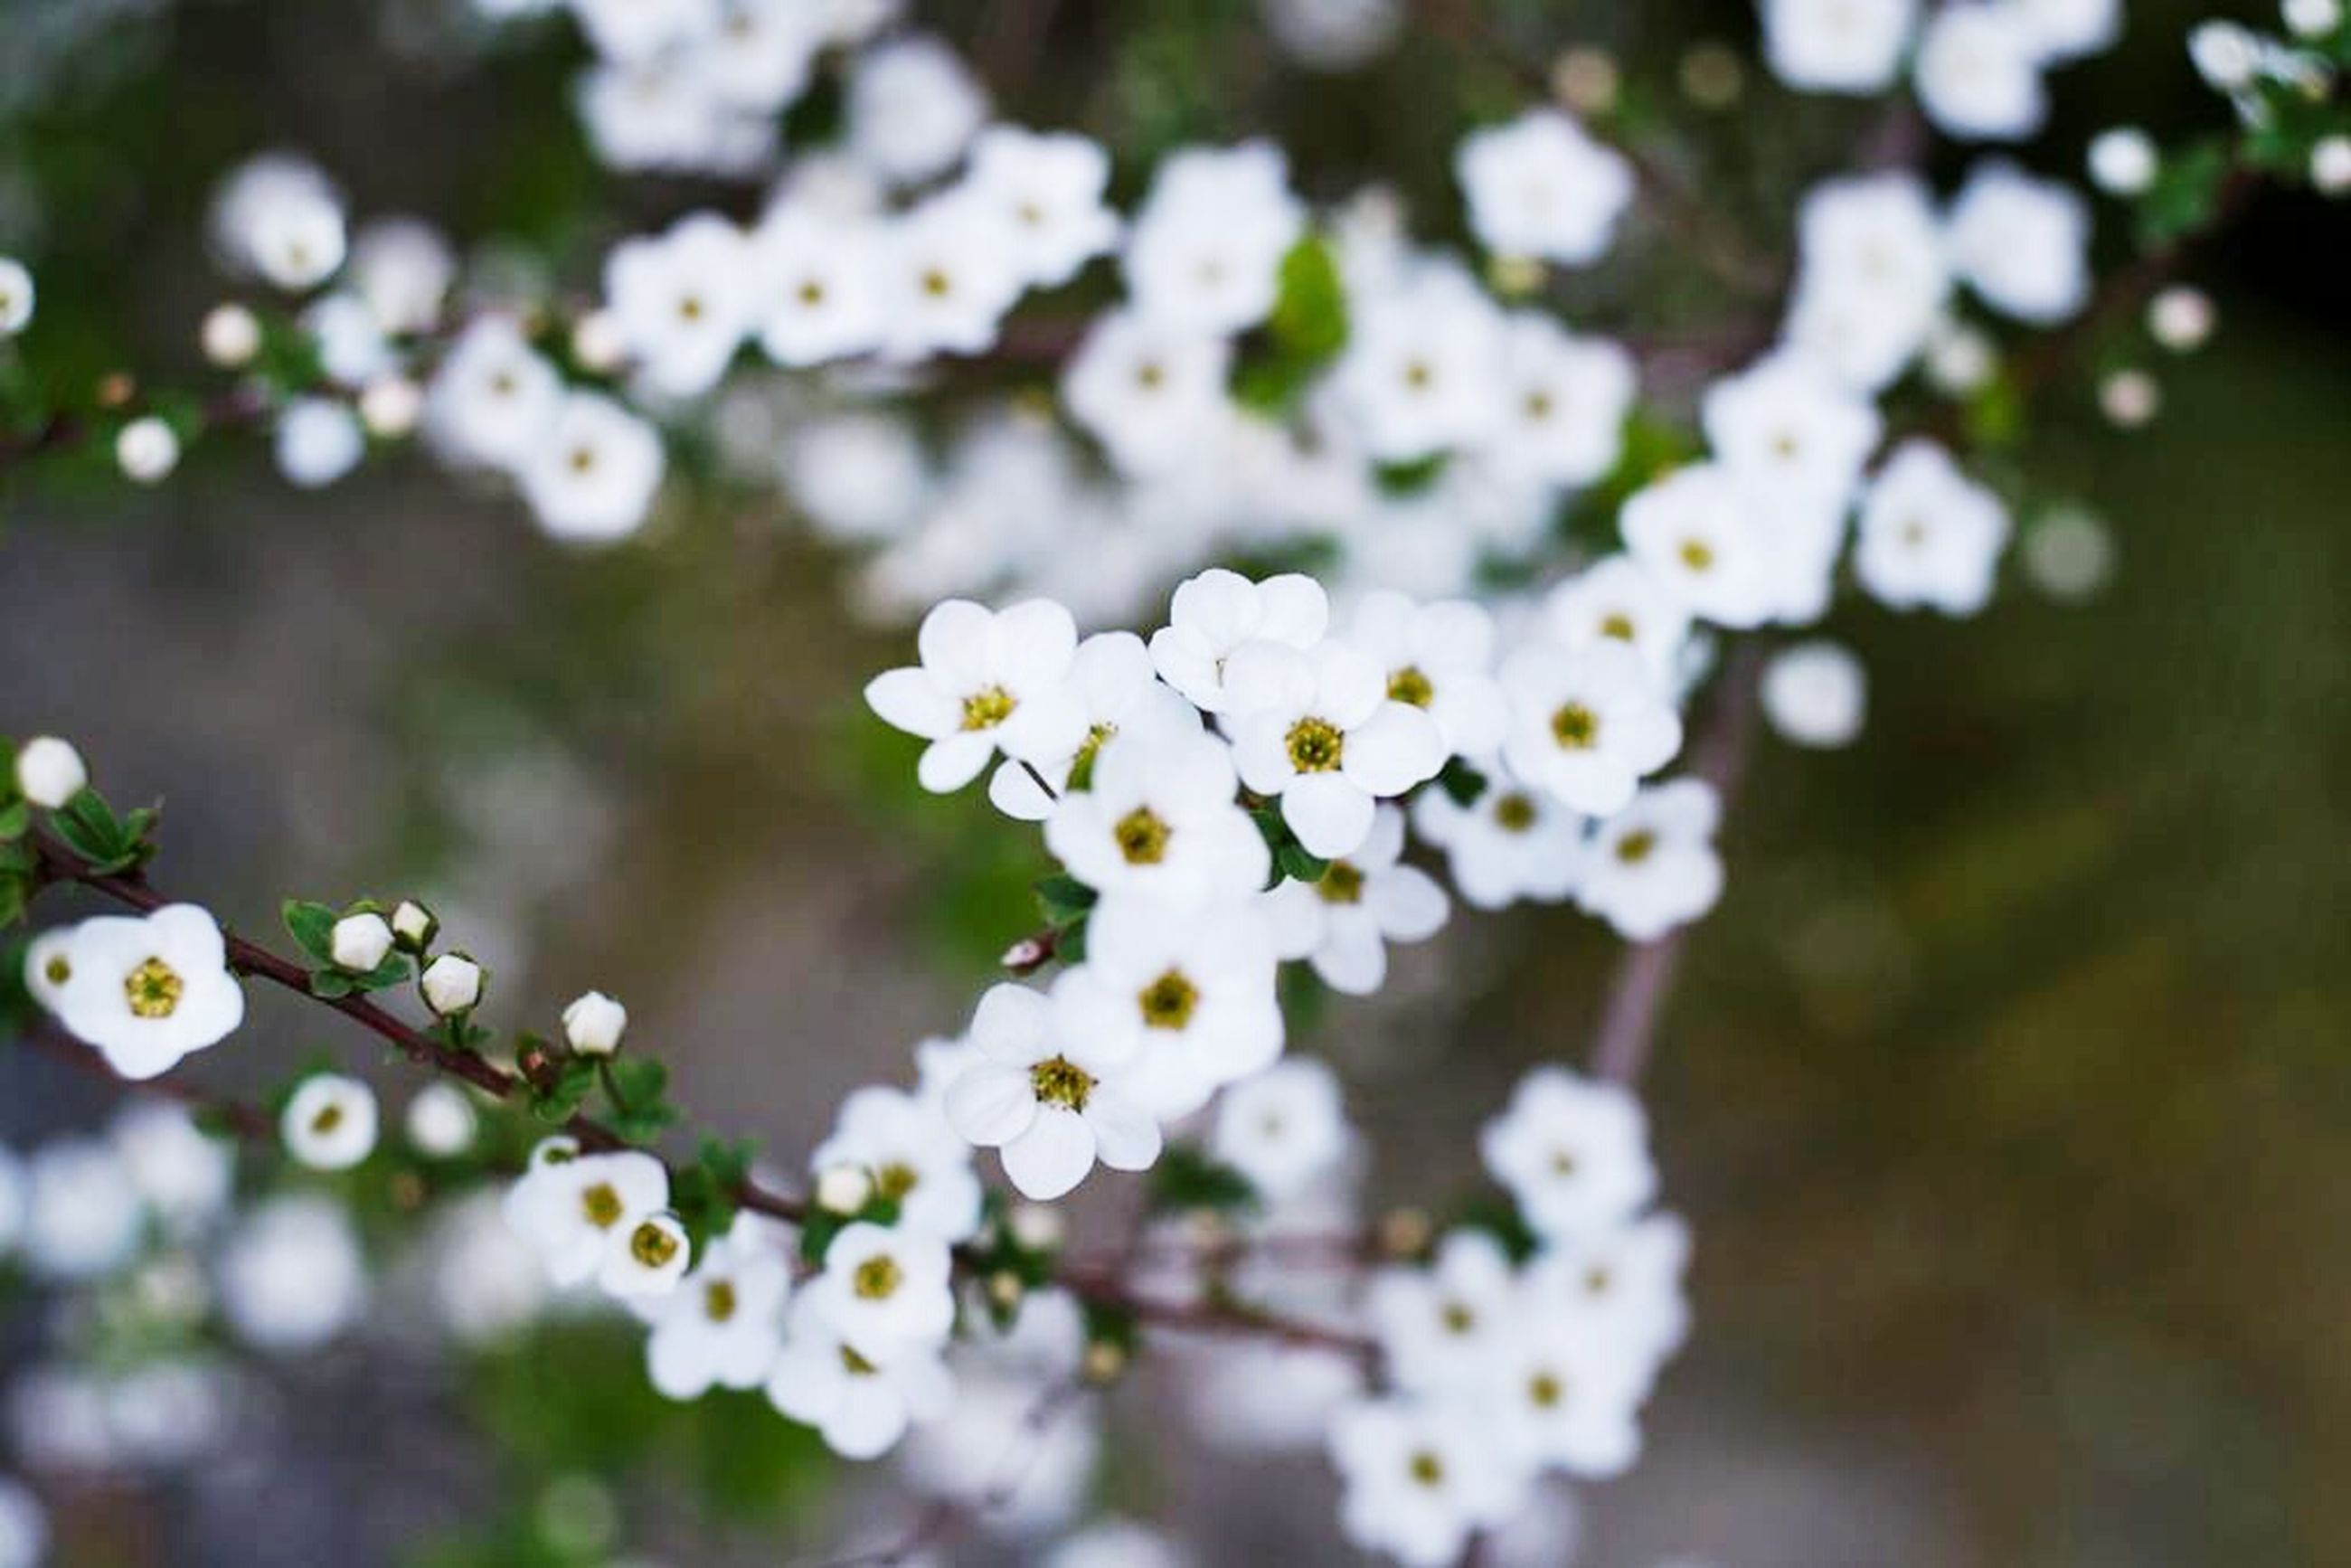 flower, freshness, white color, fragility, growth, petal, beauty in nature, focus on foreground, blooming, flower head, nature, close-up, selective focus, in bloom, blossom, plant, white, outdoors, park - man made space, springtime